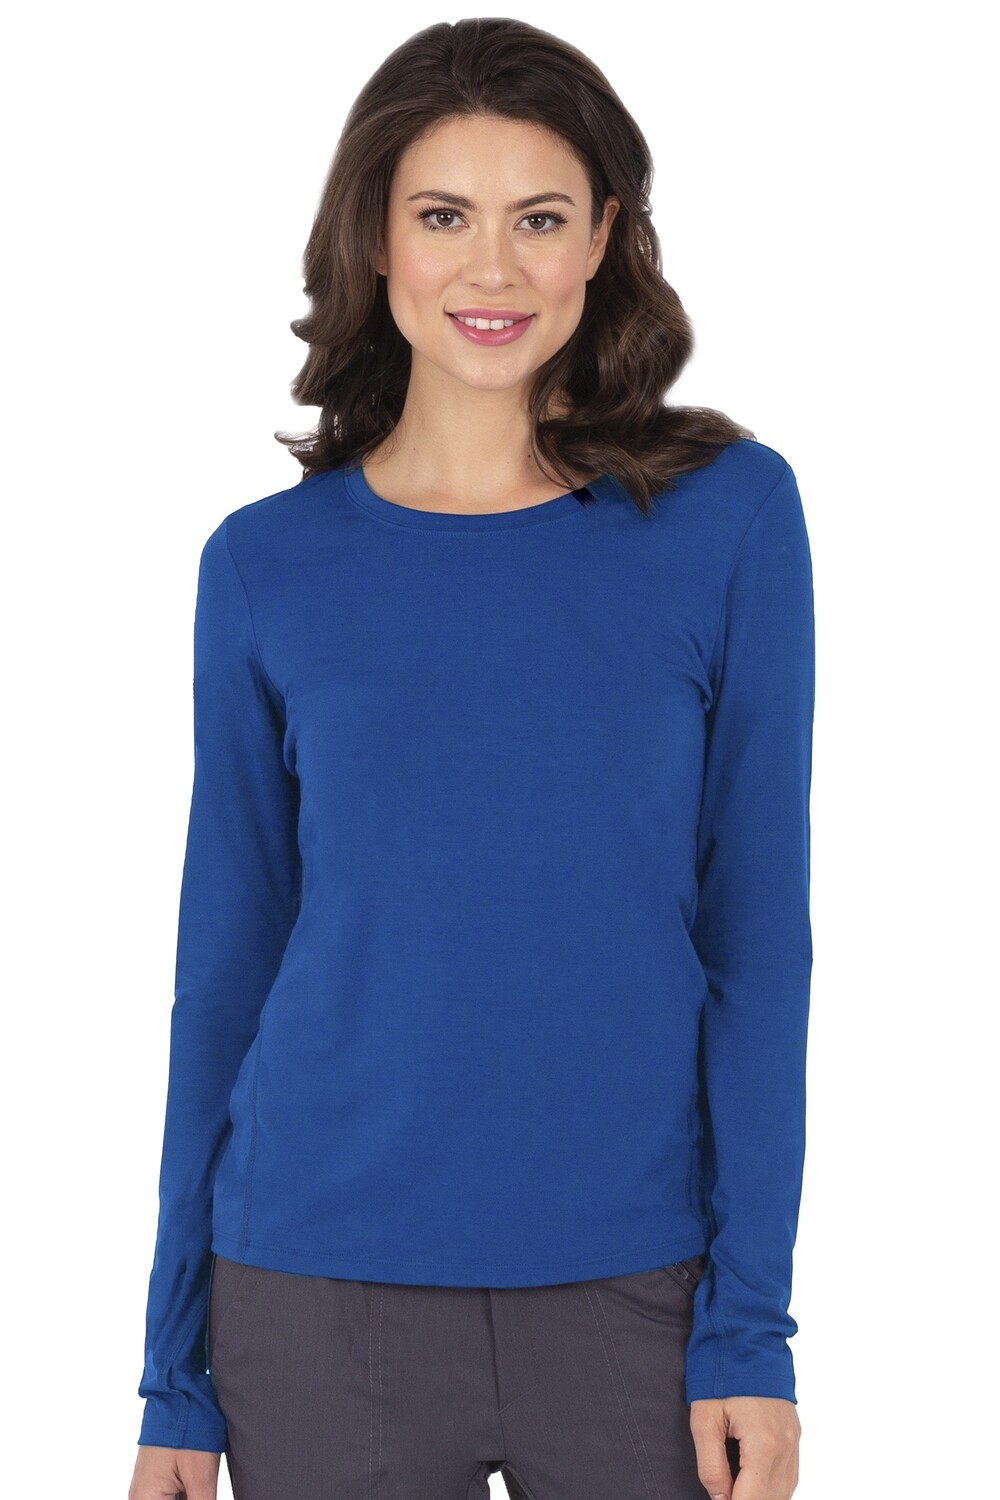 5051 MACKENZIE TEE XL ROYAL BLUE